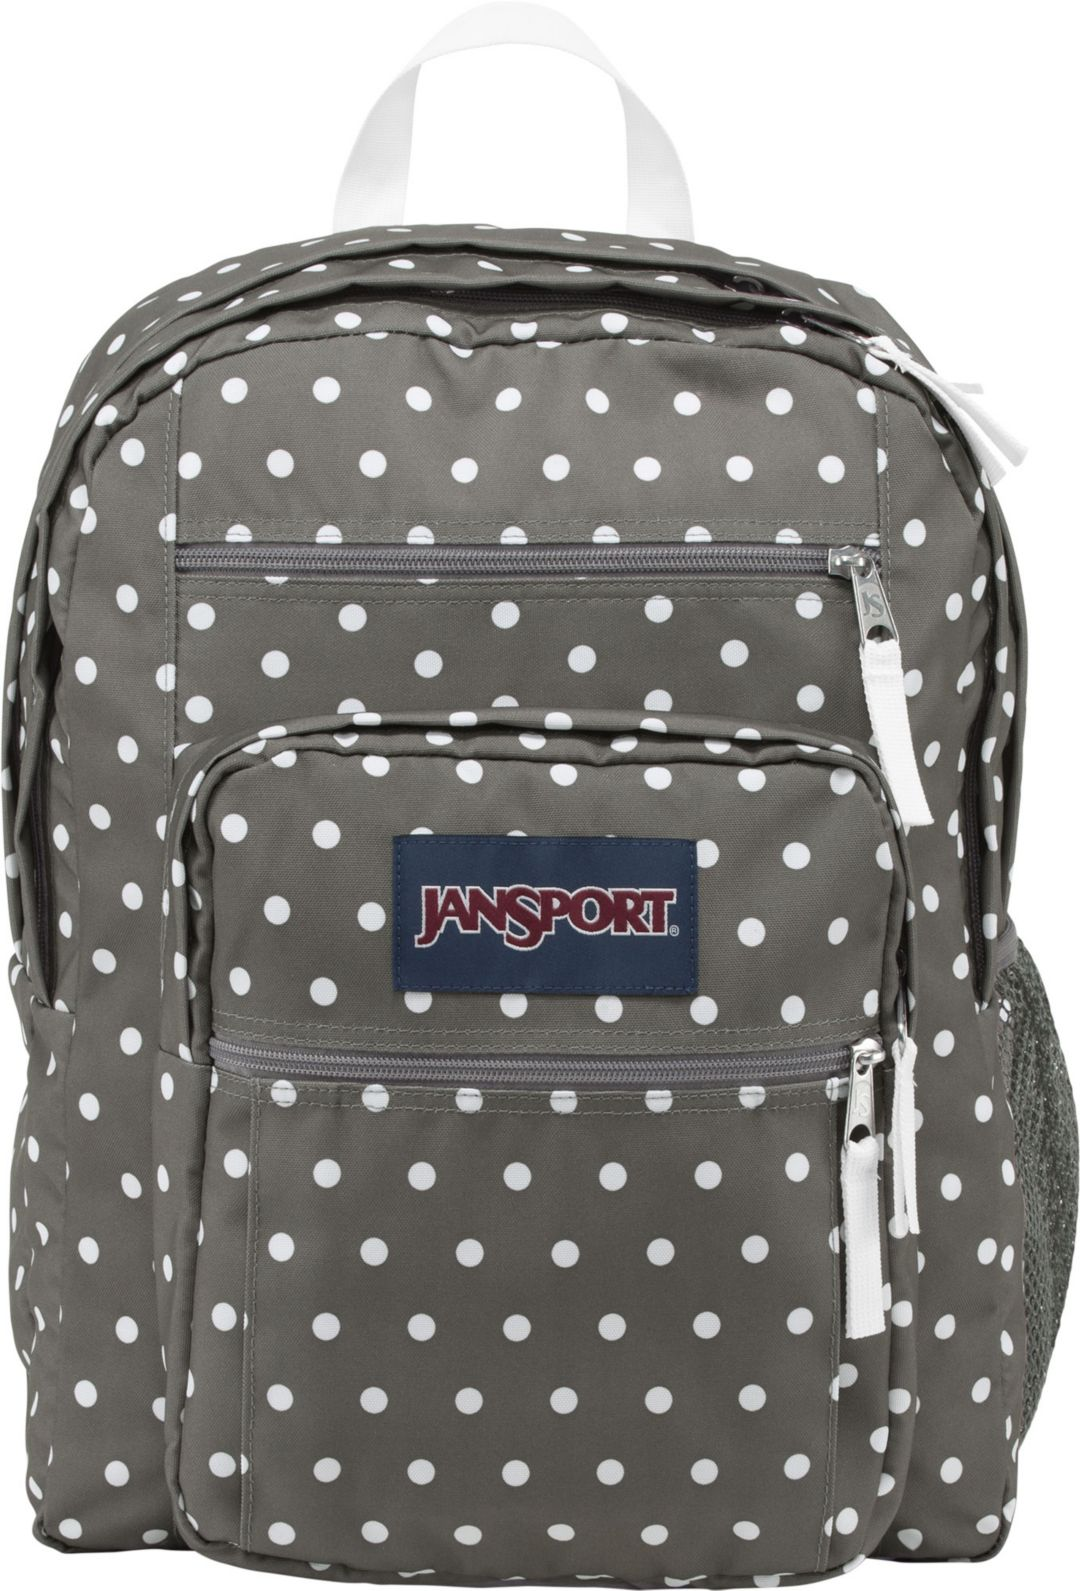 193a8f7a1f23 JanSport Big Student Backpack | DICK'S Sporting Goods